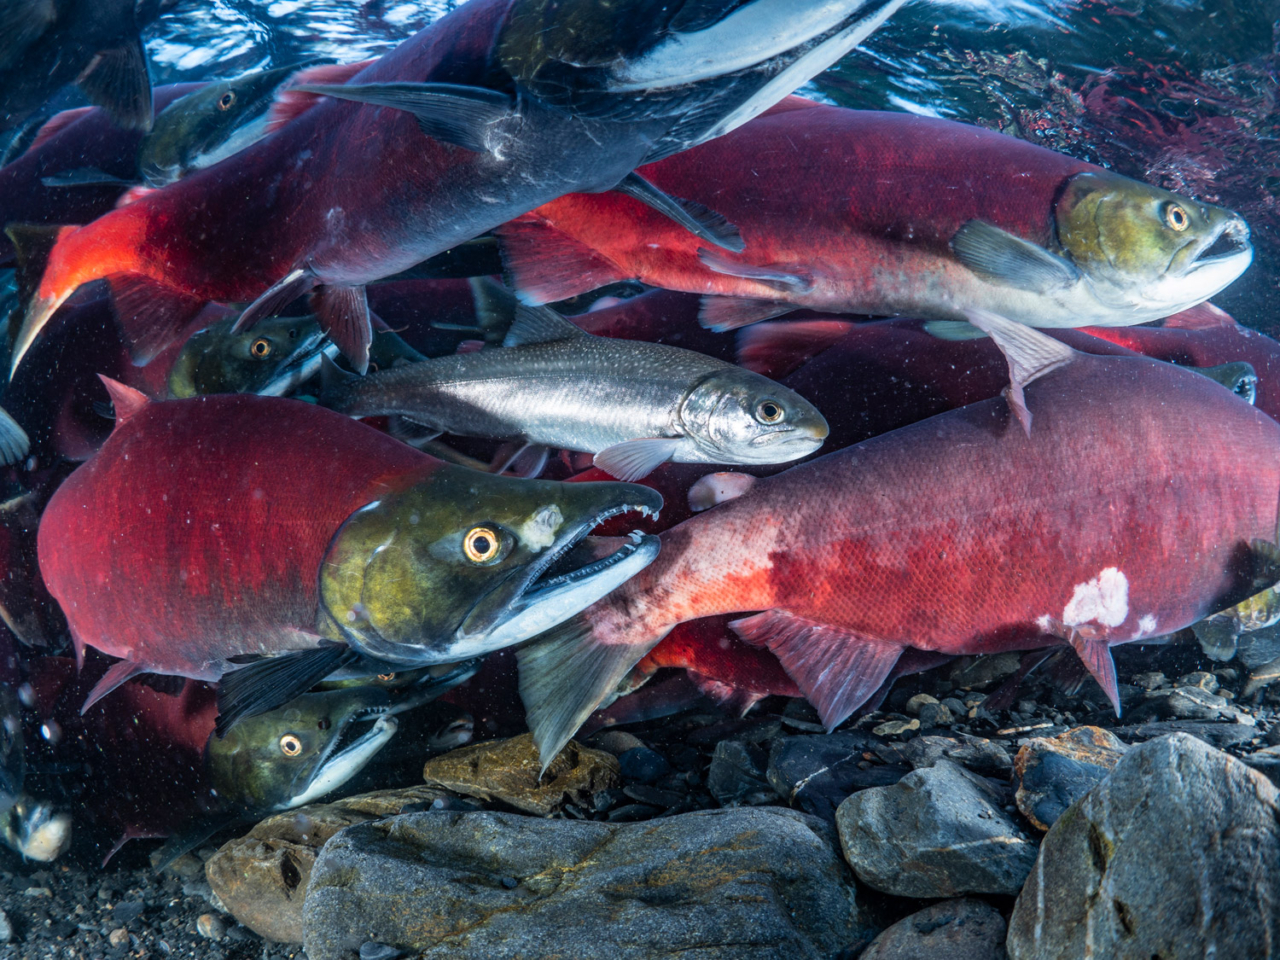 The unique hydrology of the Chilkat River allows warmer water to percolate up from the gravel below to help keep the river ice-free which allows for late season runs of sockeye salmon. photo: Connor Gallagher